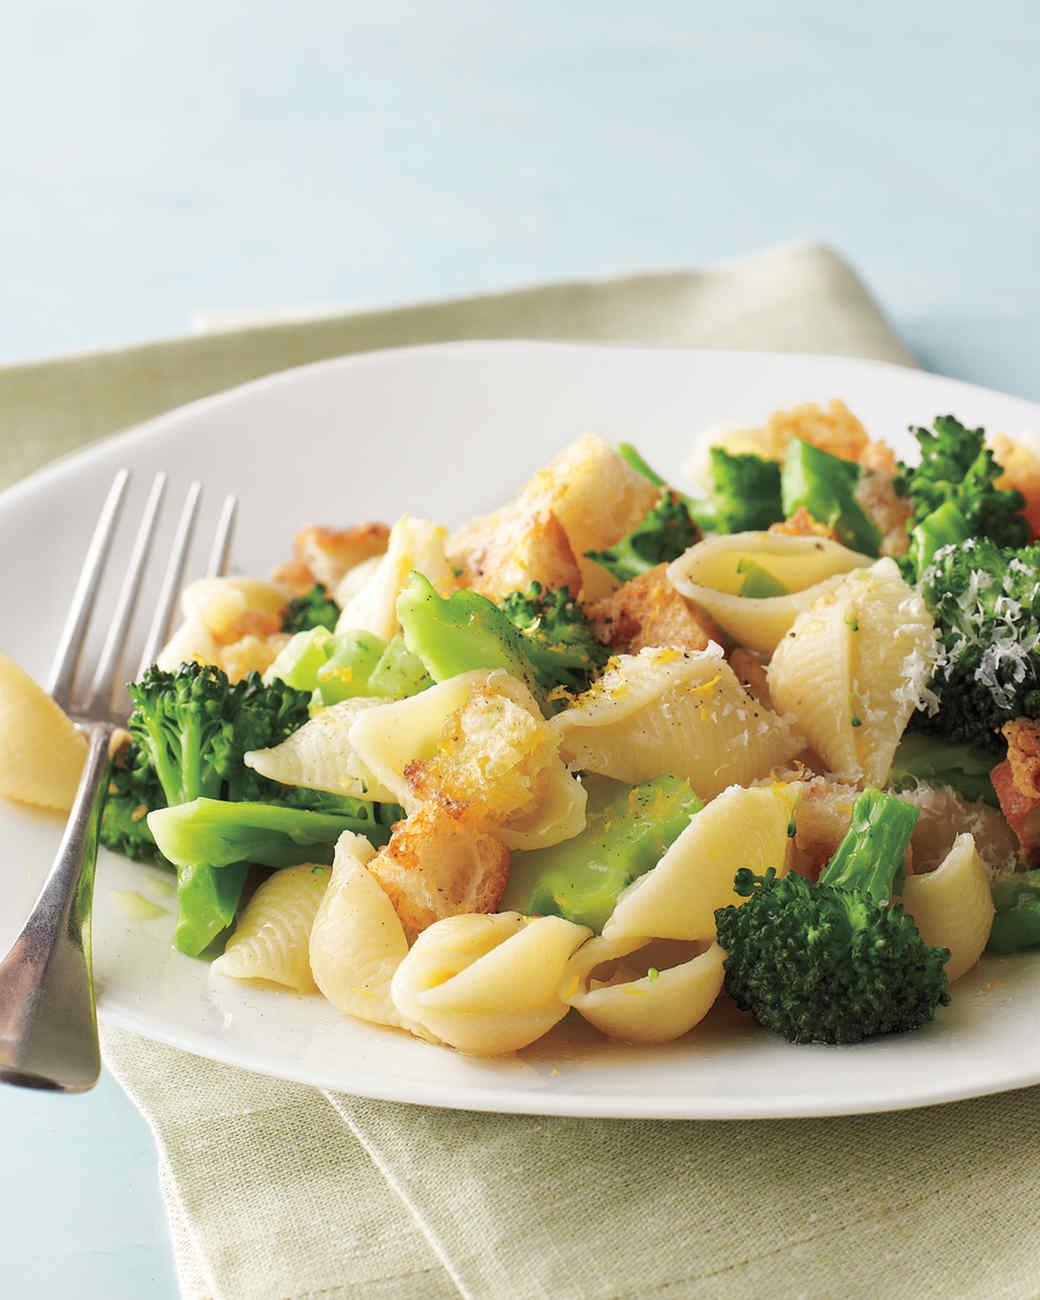 30 Tried-and-True Broccoli Recipes You Need in Your Life | Martha Stewart